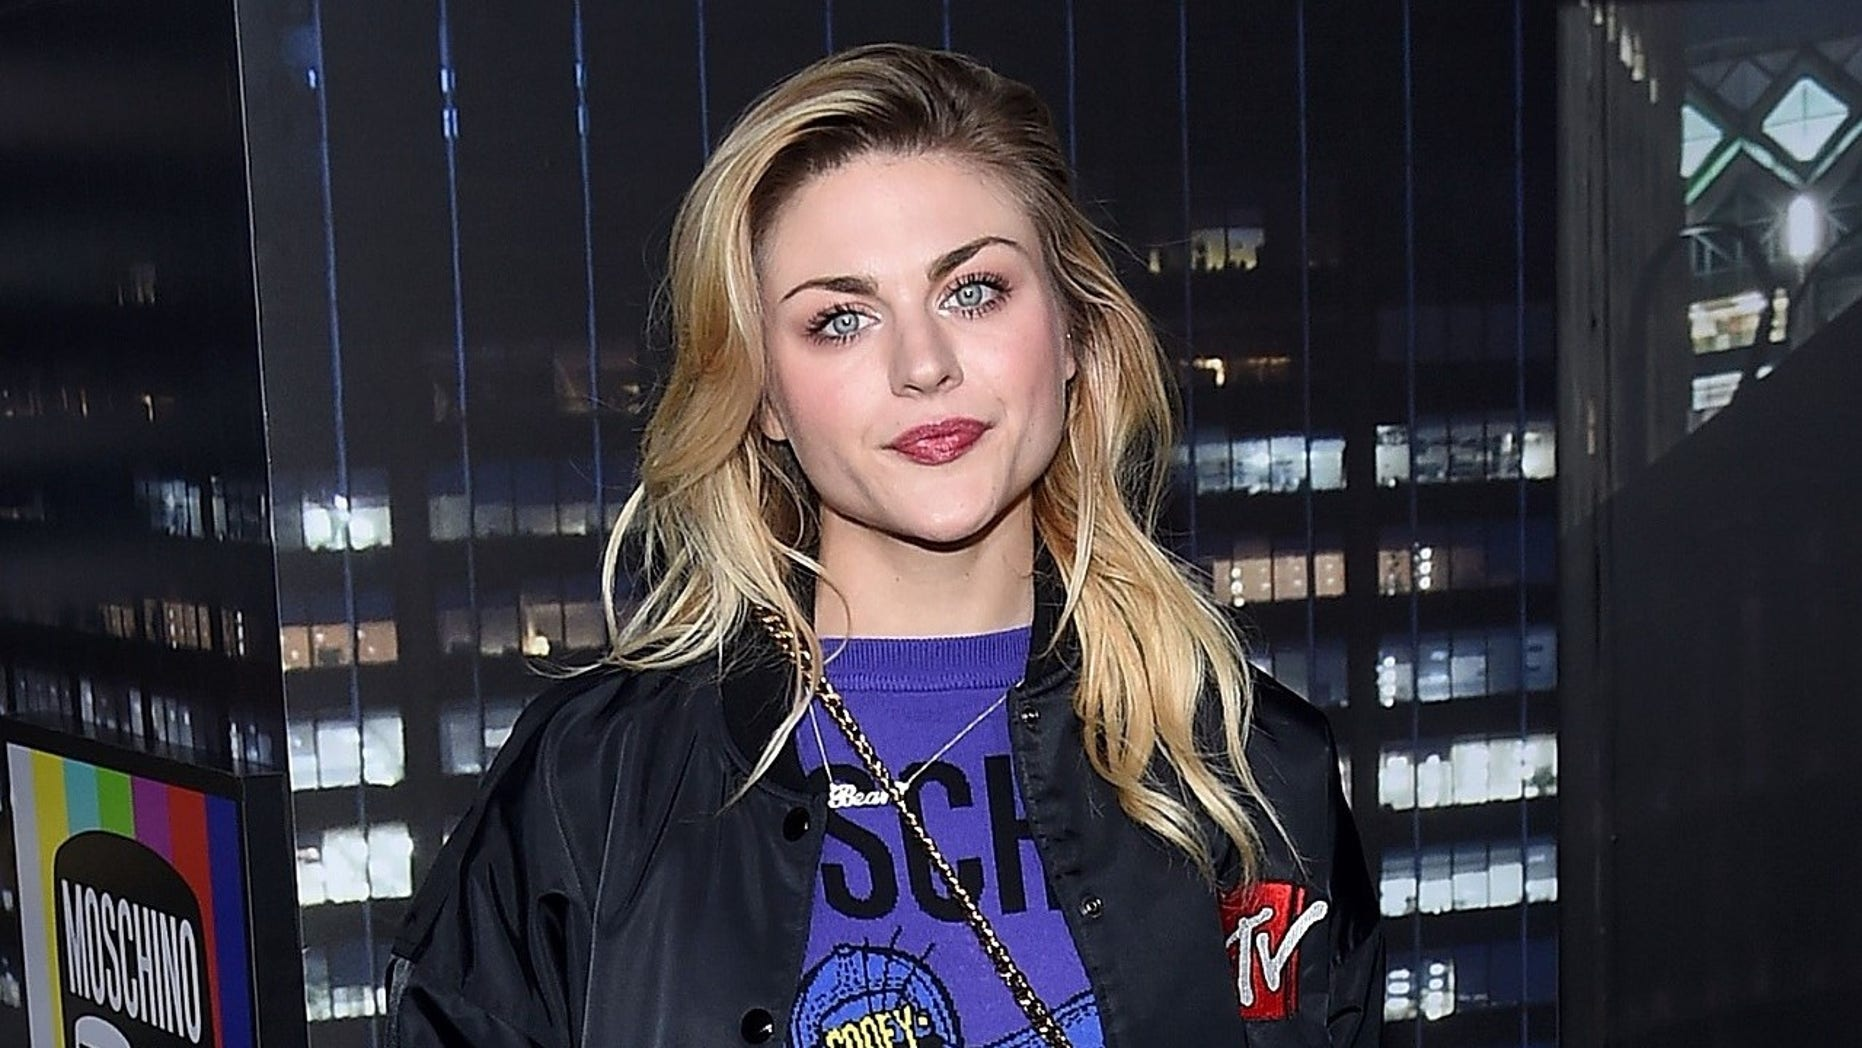 Frances Bean Cobain opened up about the money she inherited from her father Kurt Cobain.